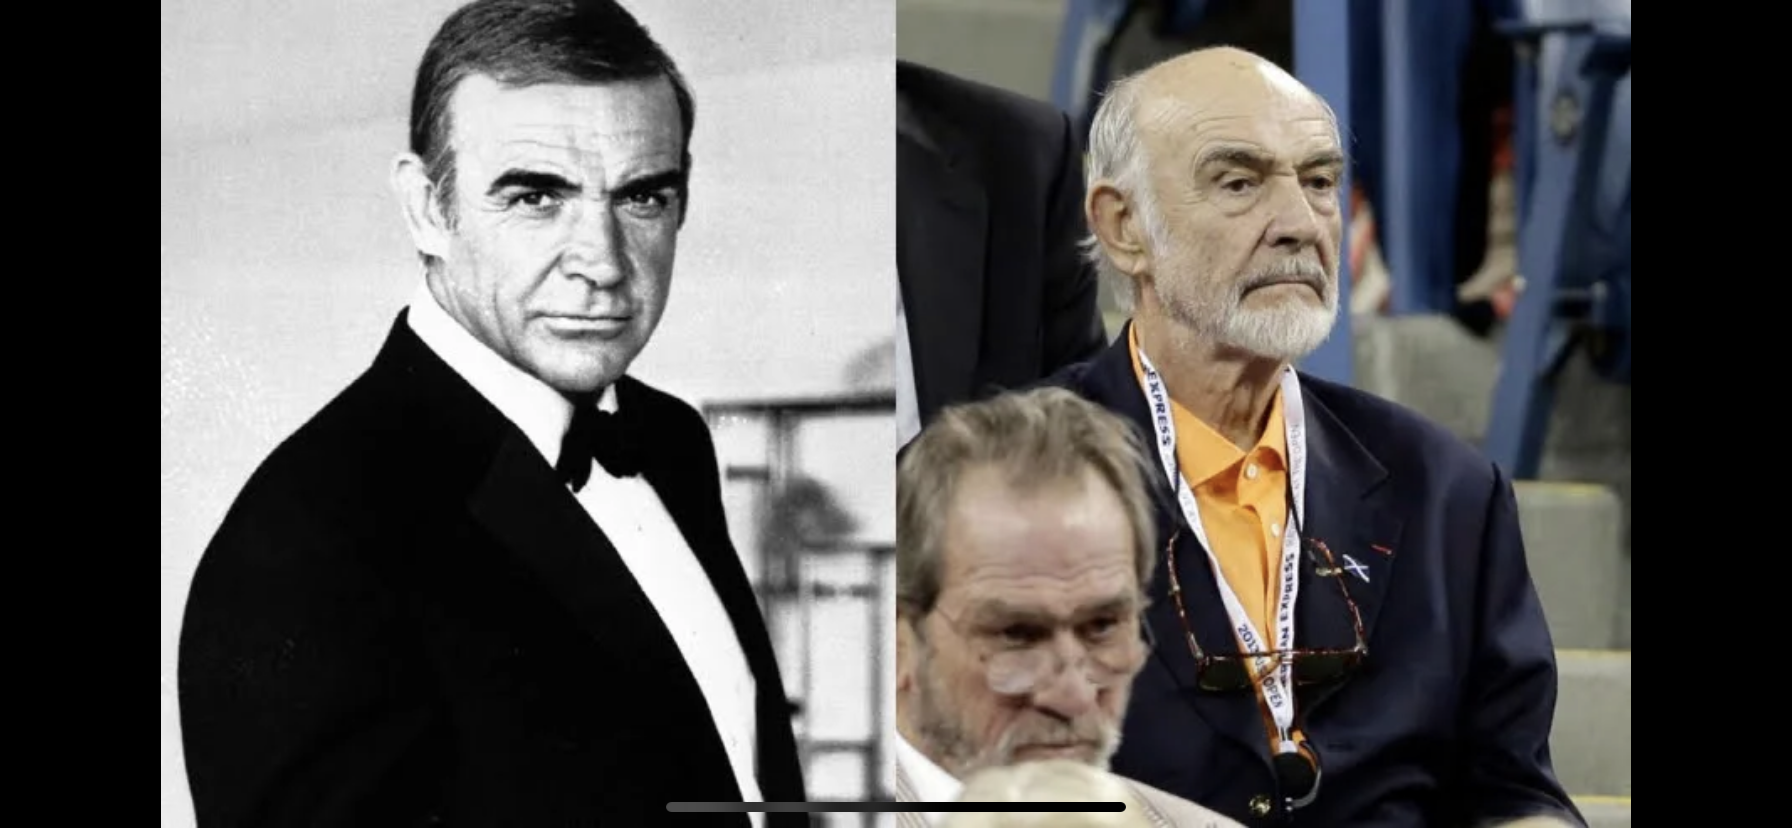 Sean Connery, original James Bond, dies at 90